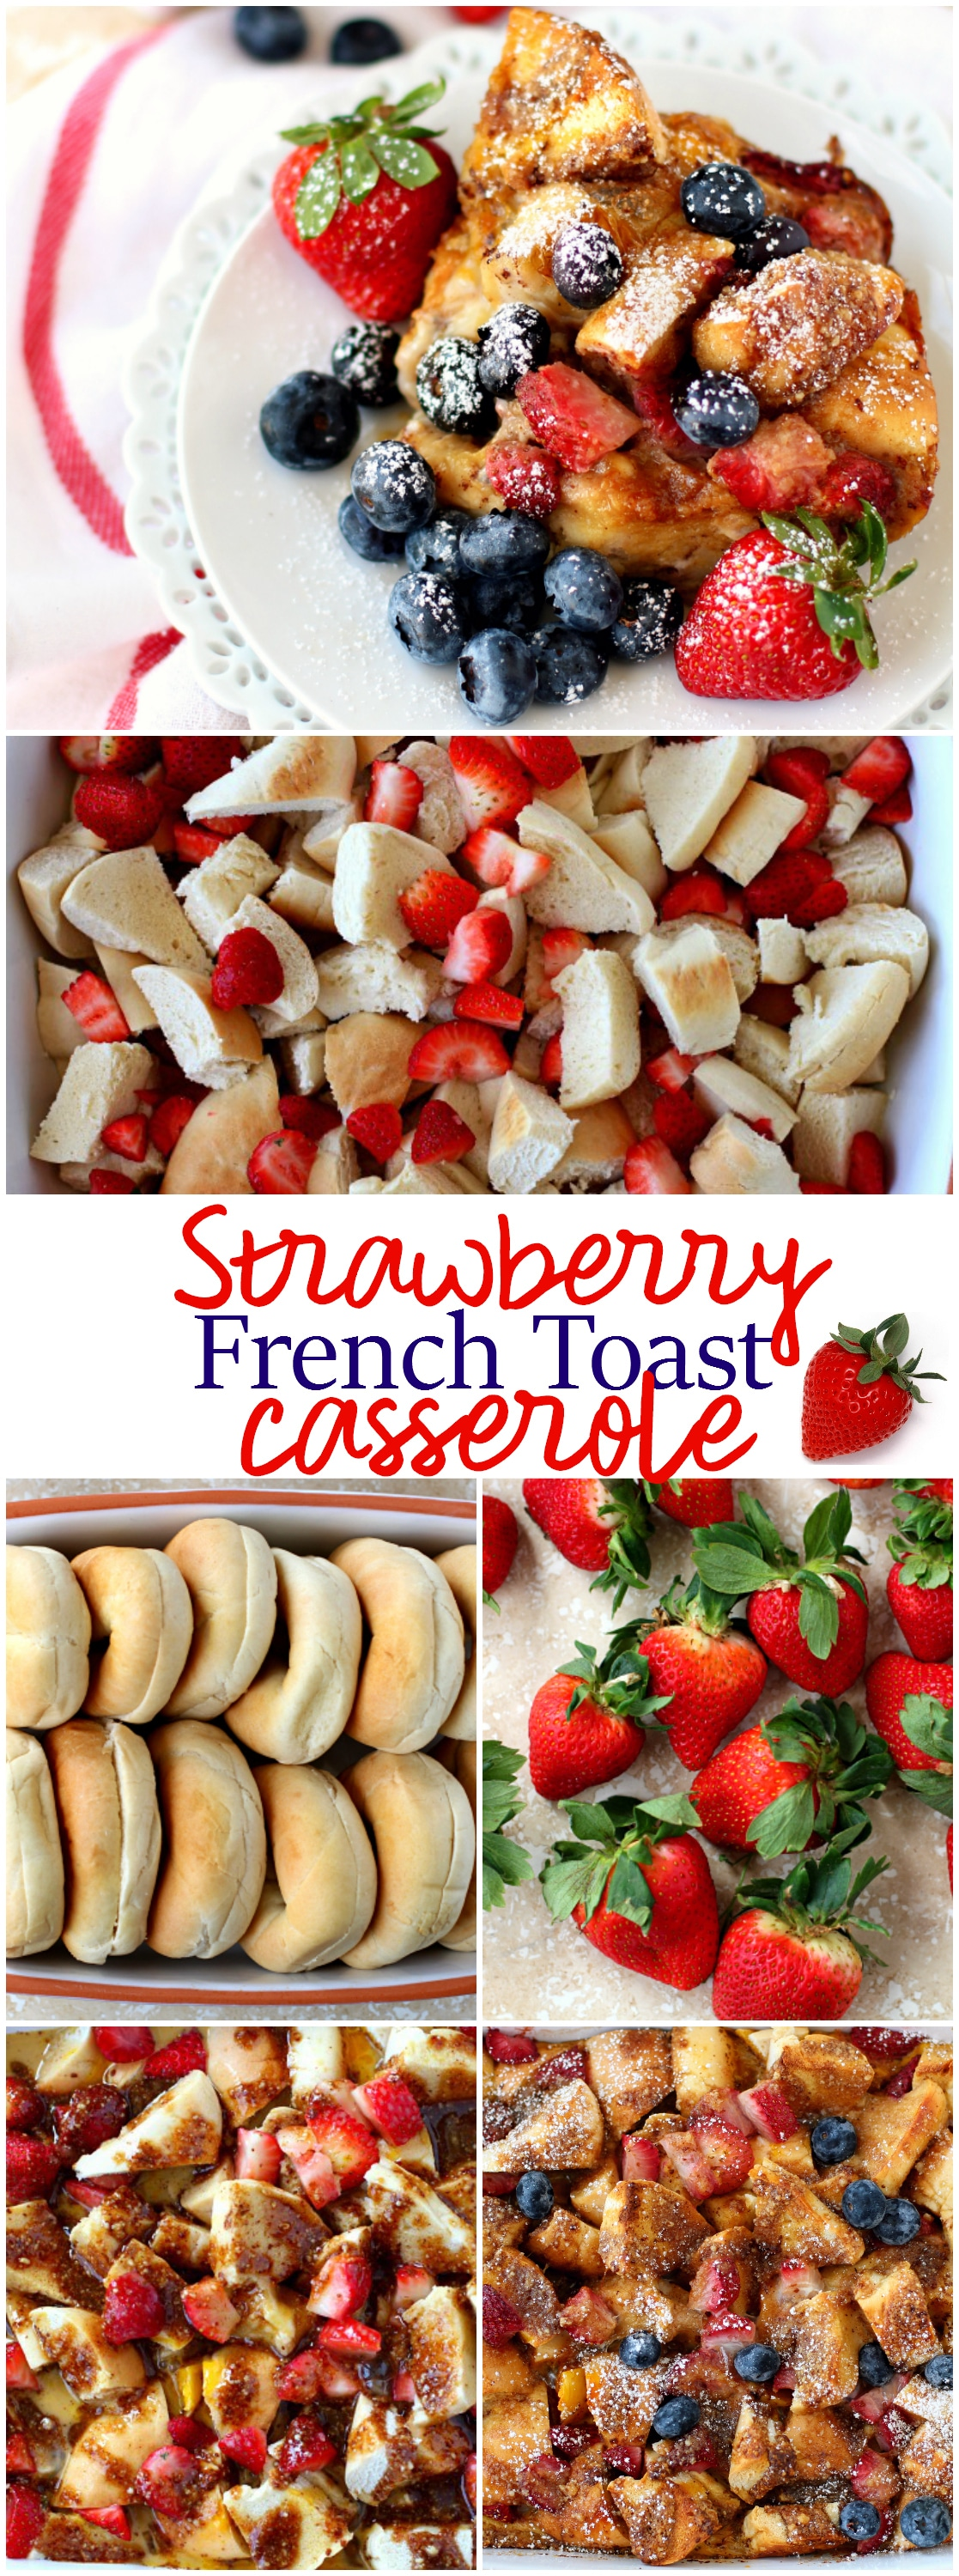 Rise And Shine To A Scrumptious Make Ahead Baked Strawberry Bagel French  Toast Casserole! It